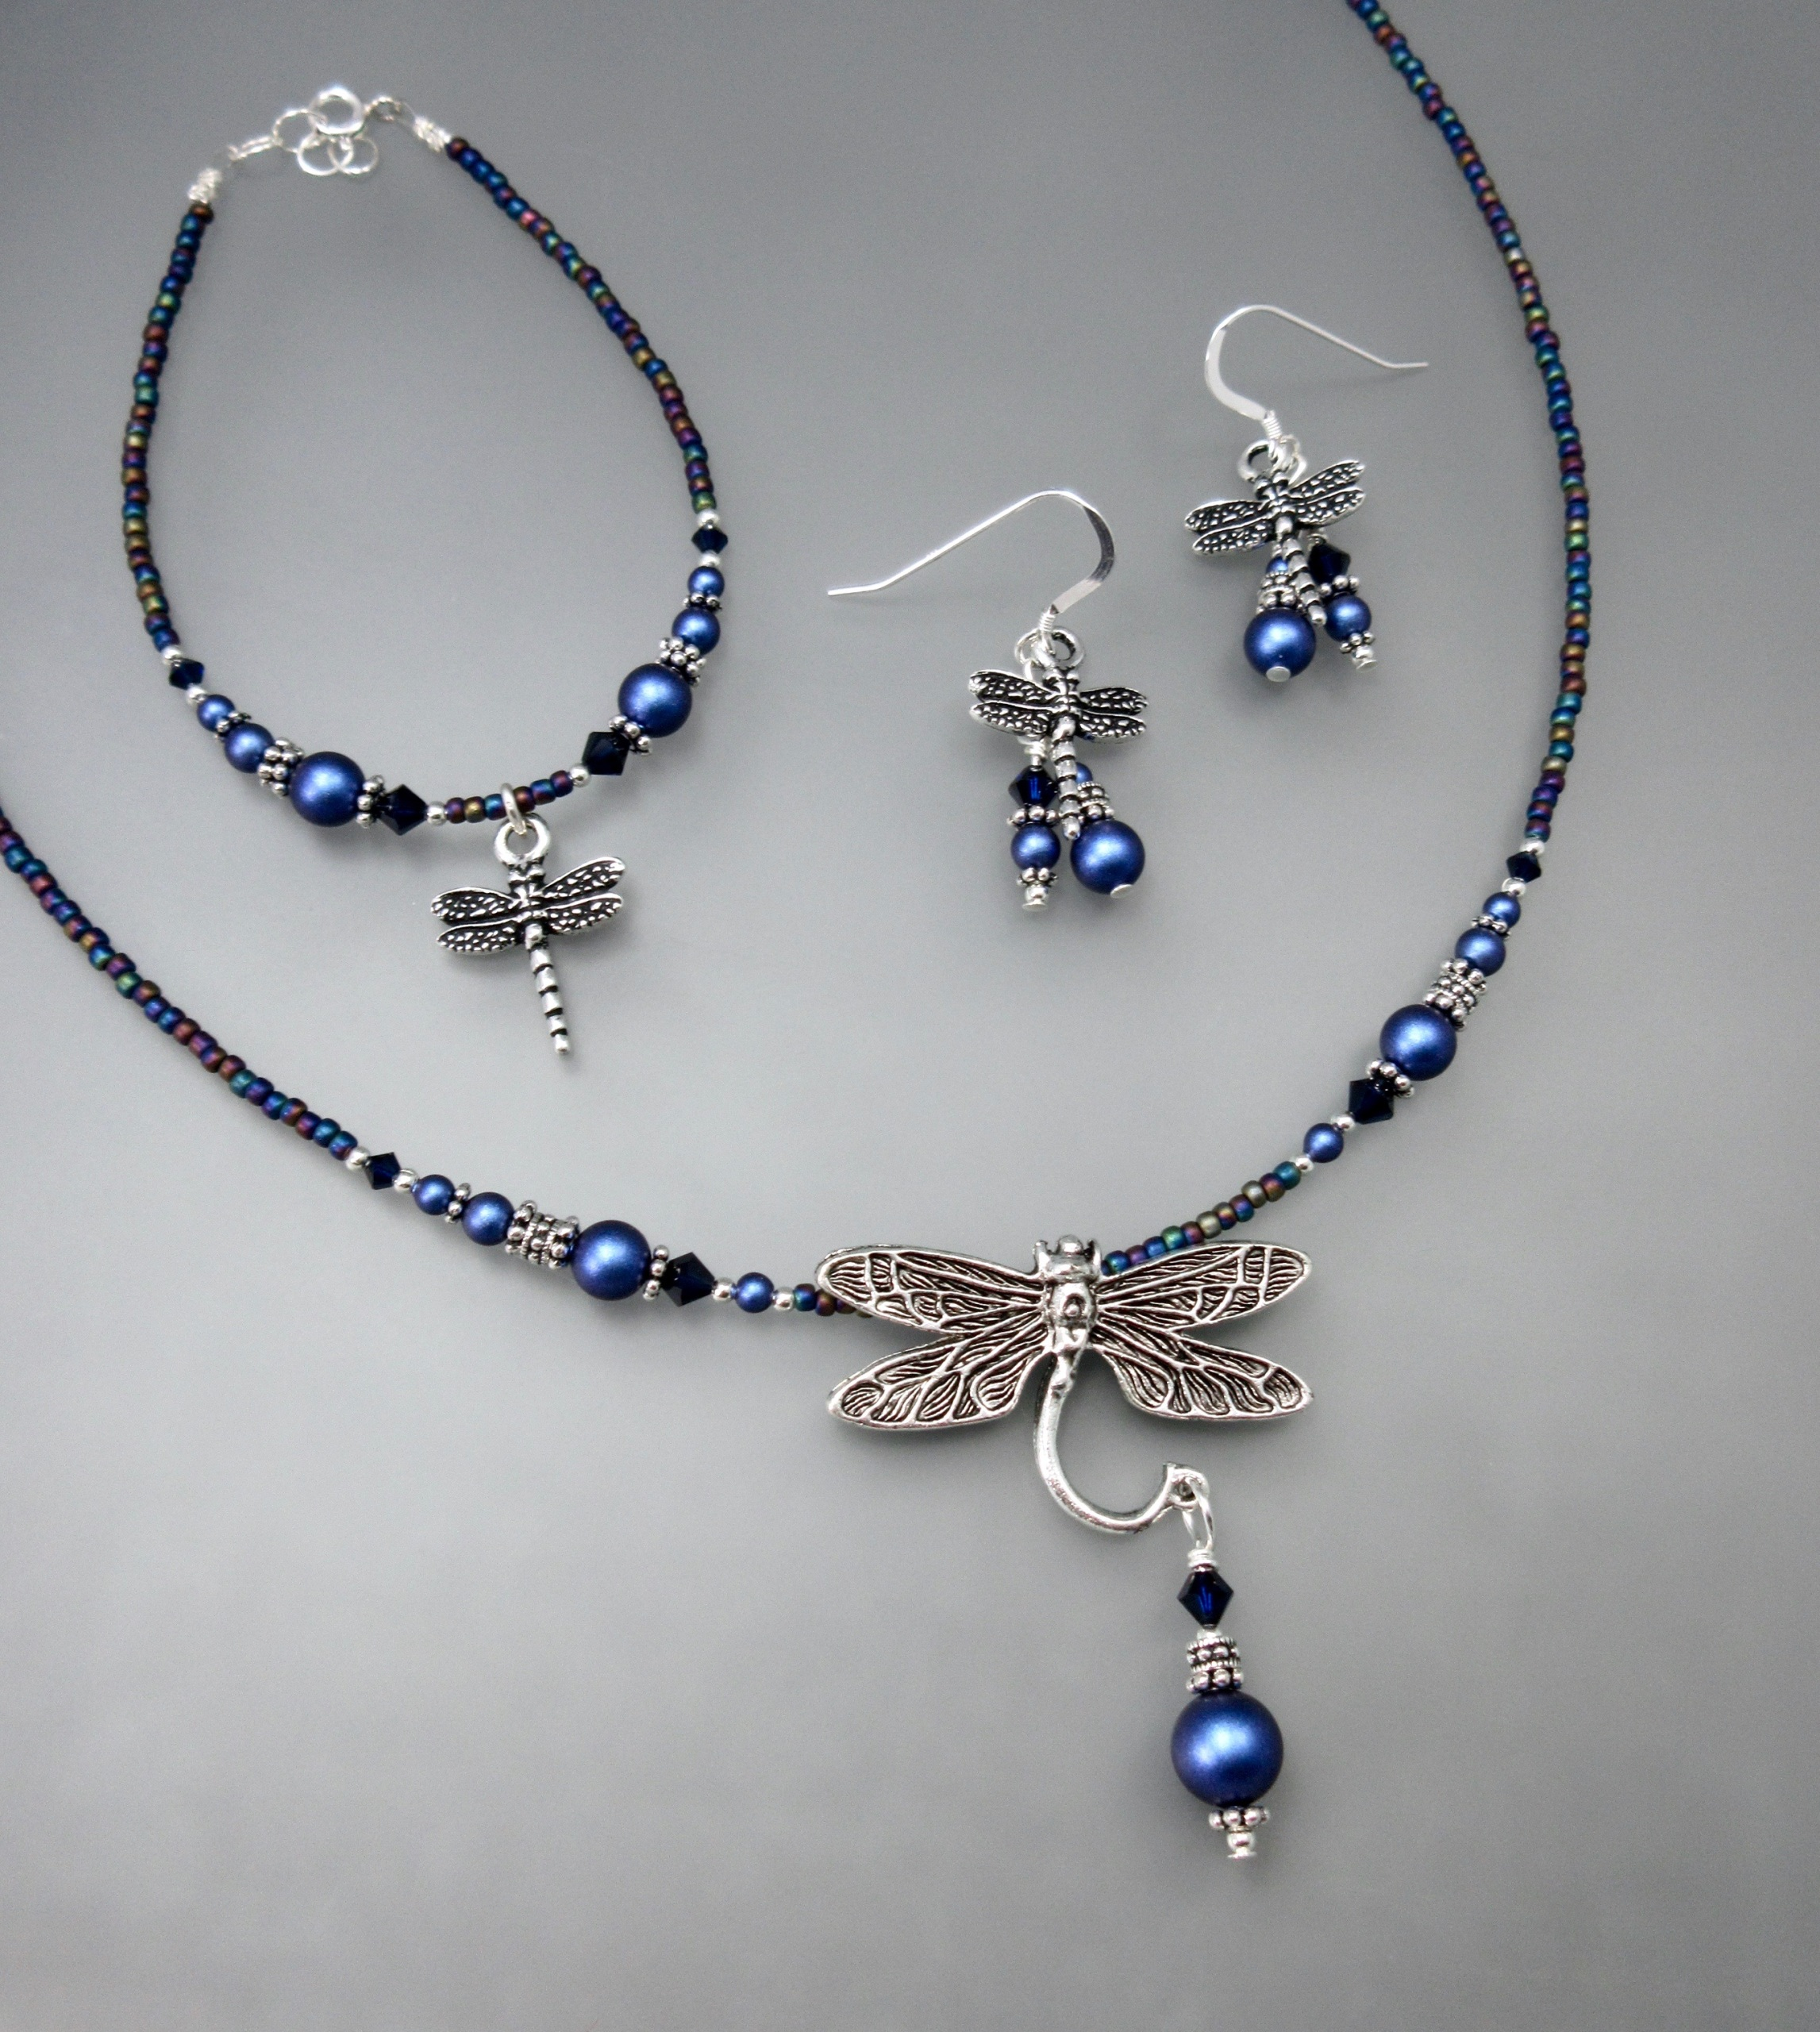 necklace brusinenko butterfly weaving marina blue silver online wings knitting shop on jevelry bead item